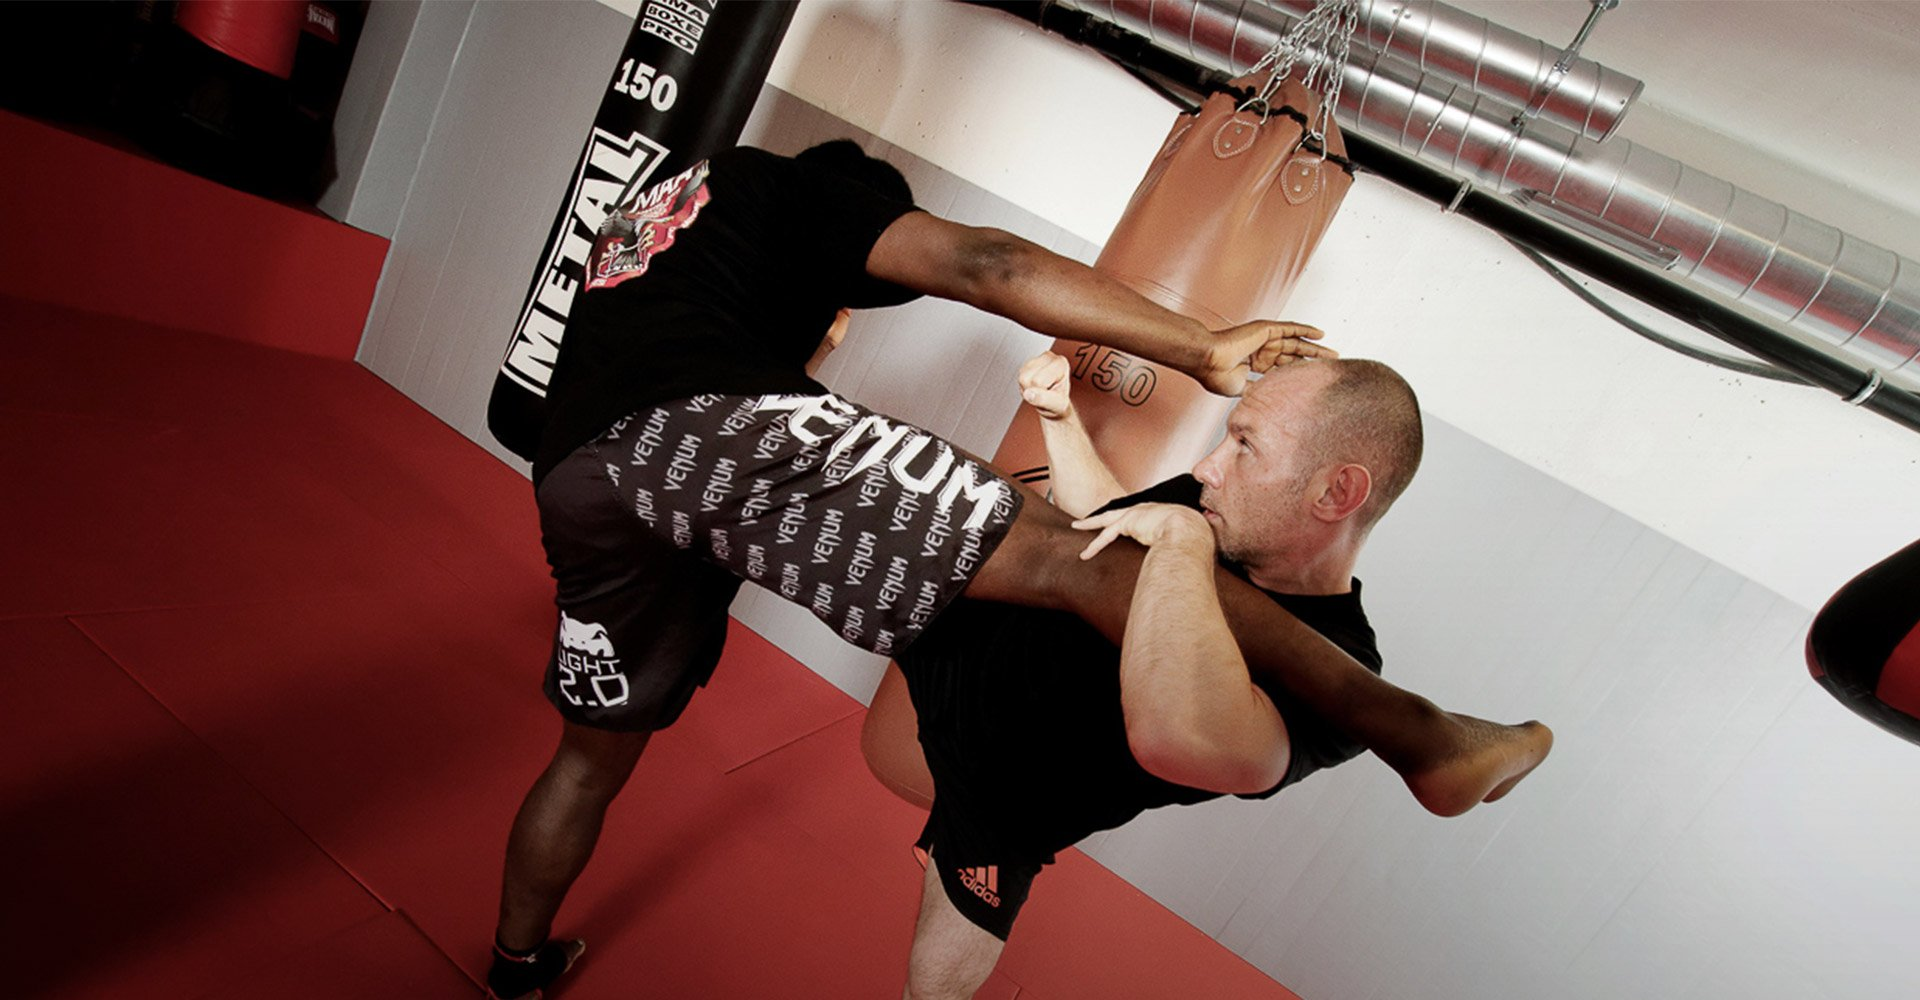 cours_boxe_techniques_pieds_poings